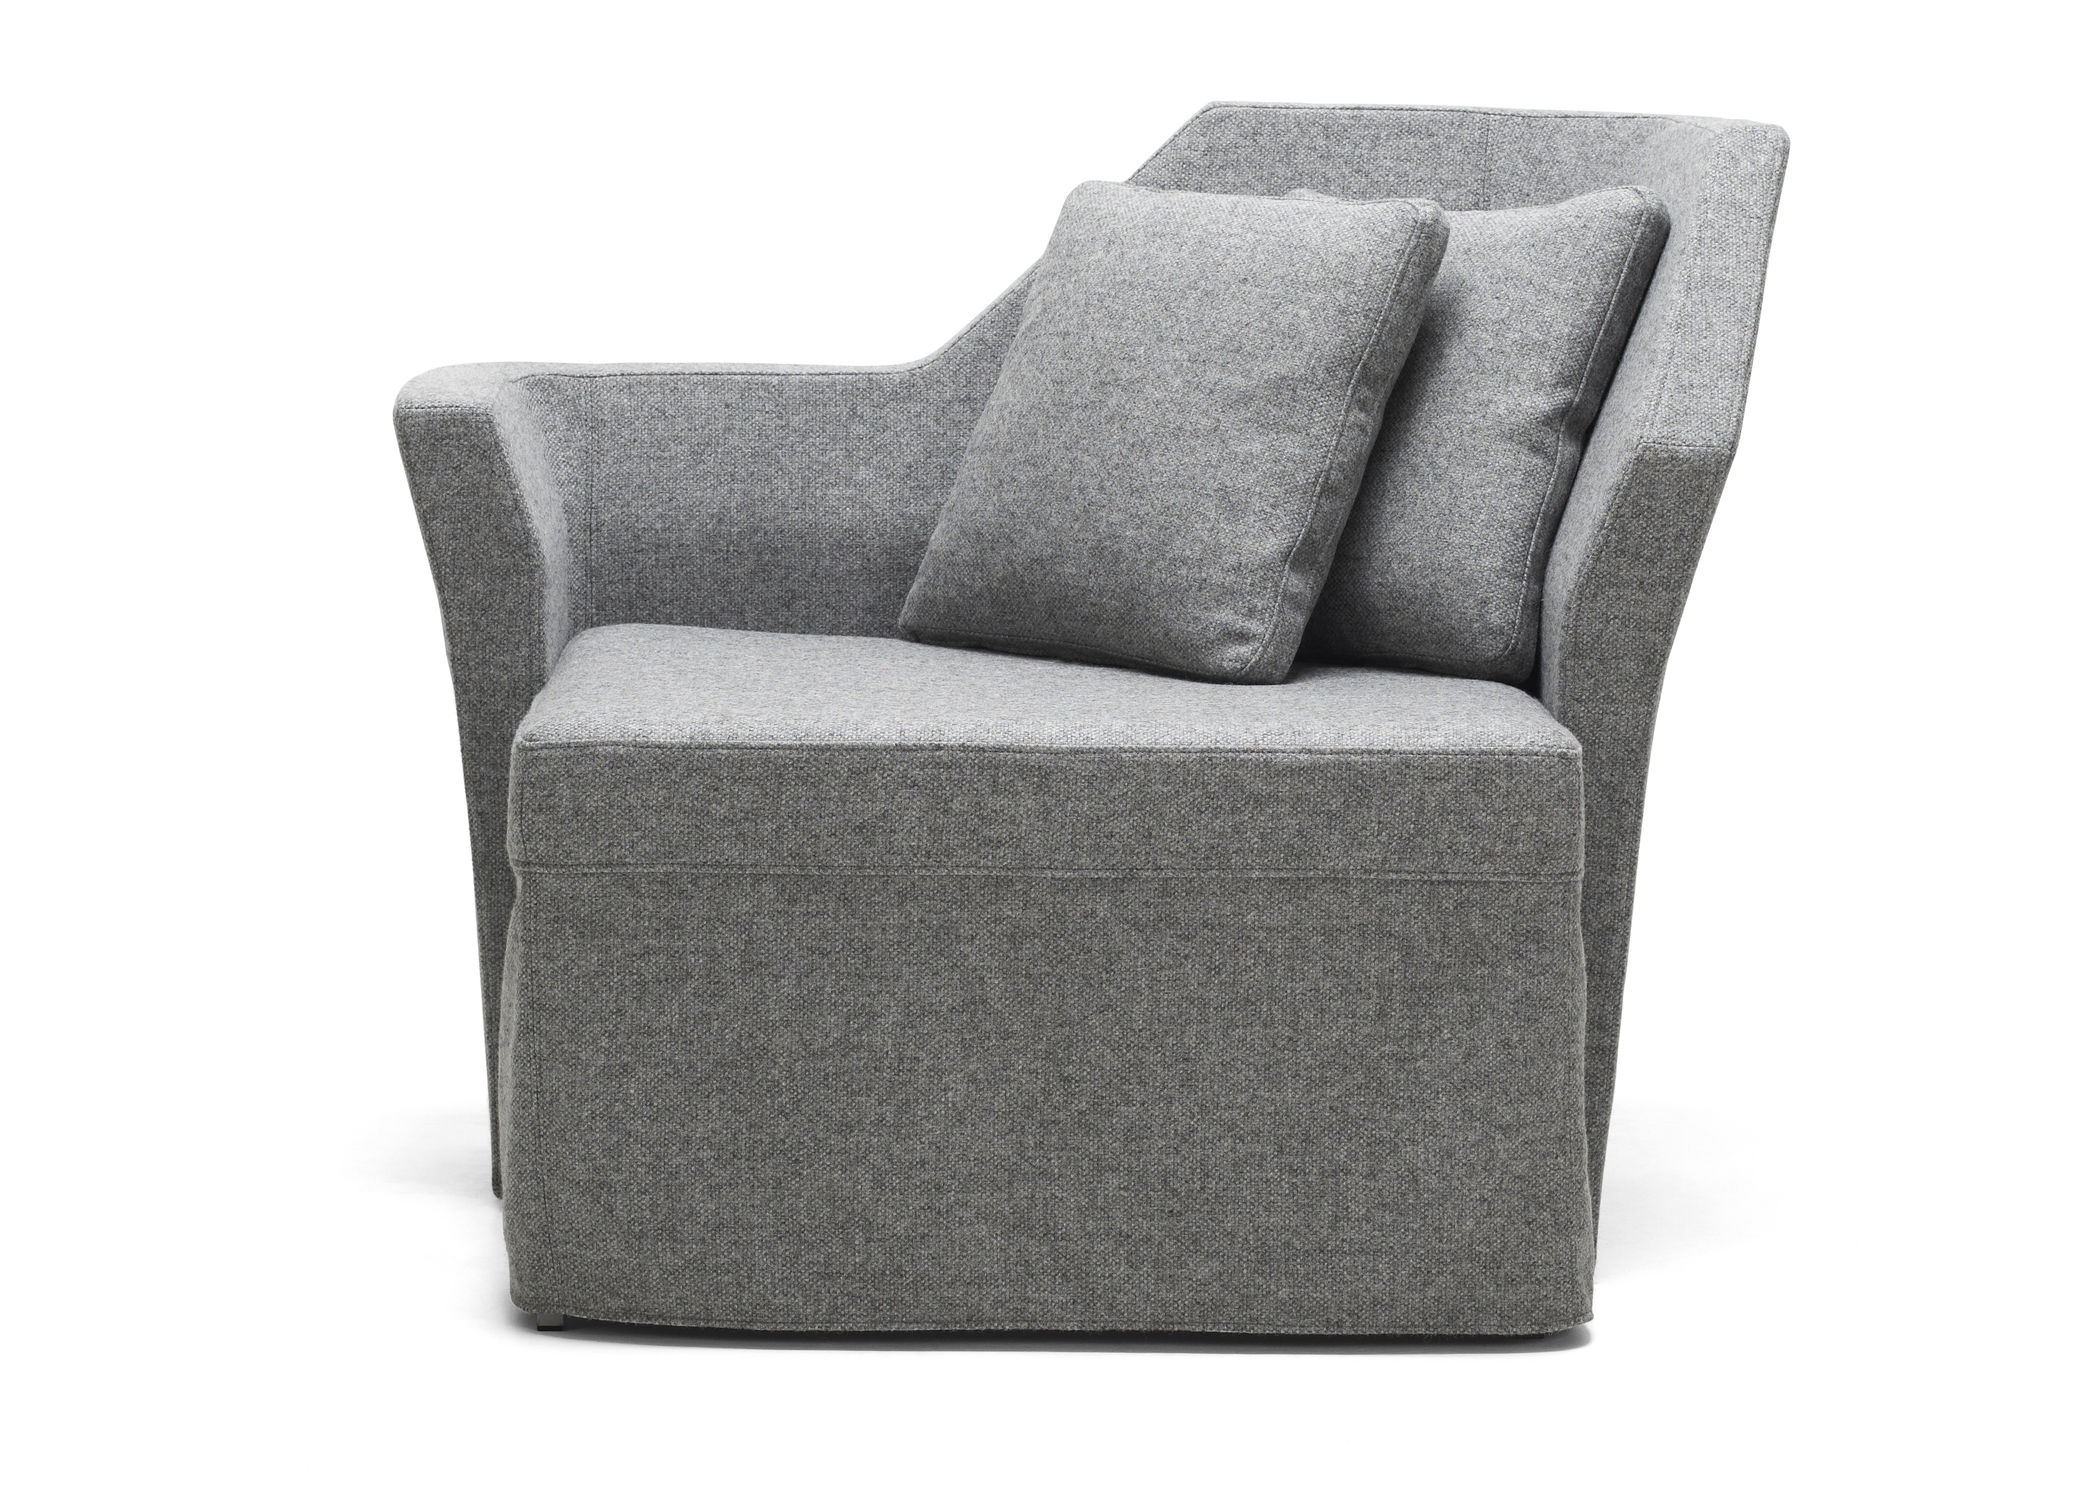 Contemporary Armchair / Textile / Bed   COLLAR By Jesper Ståhl